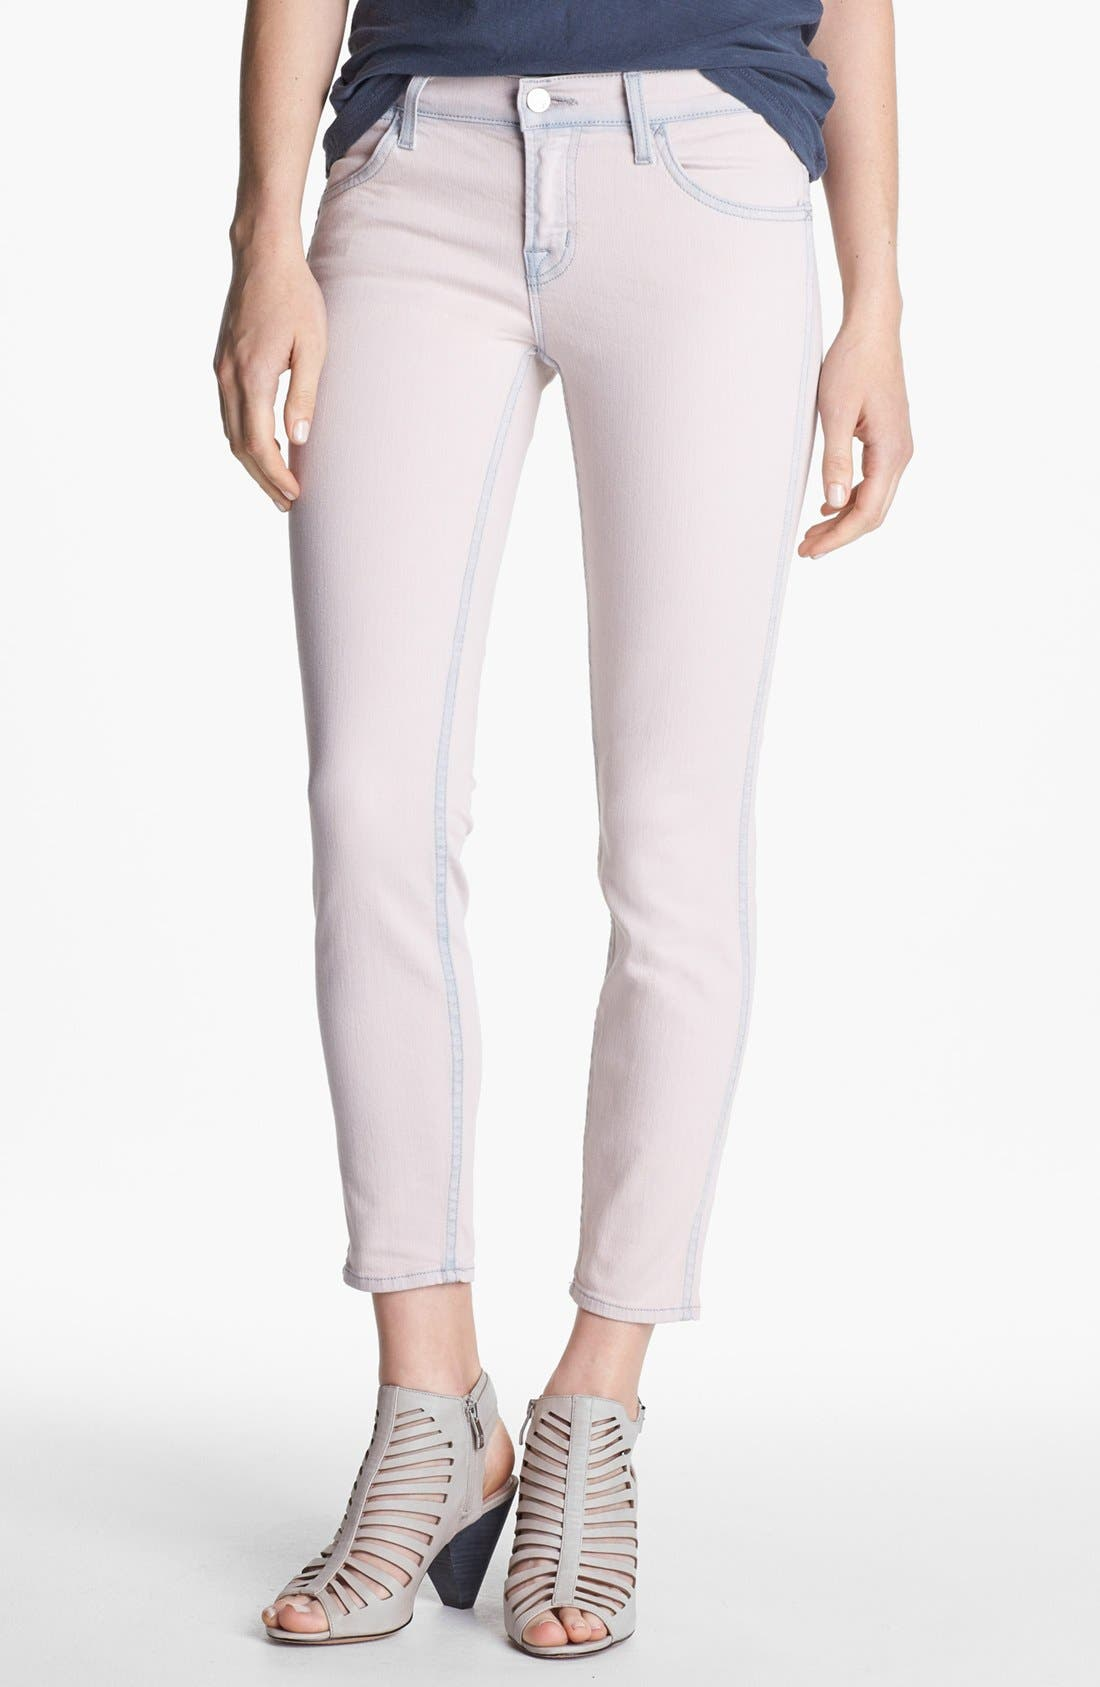 Alternate Image 1 Selected - J Brand 'Allegra' Ankle Skinny Jeans (Nirvana Magnolia)